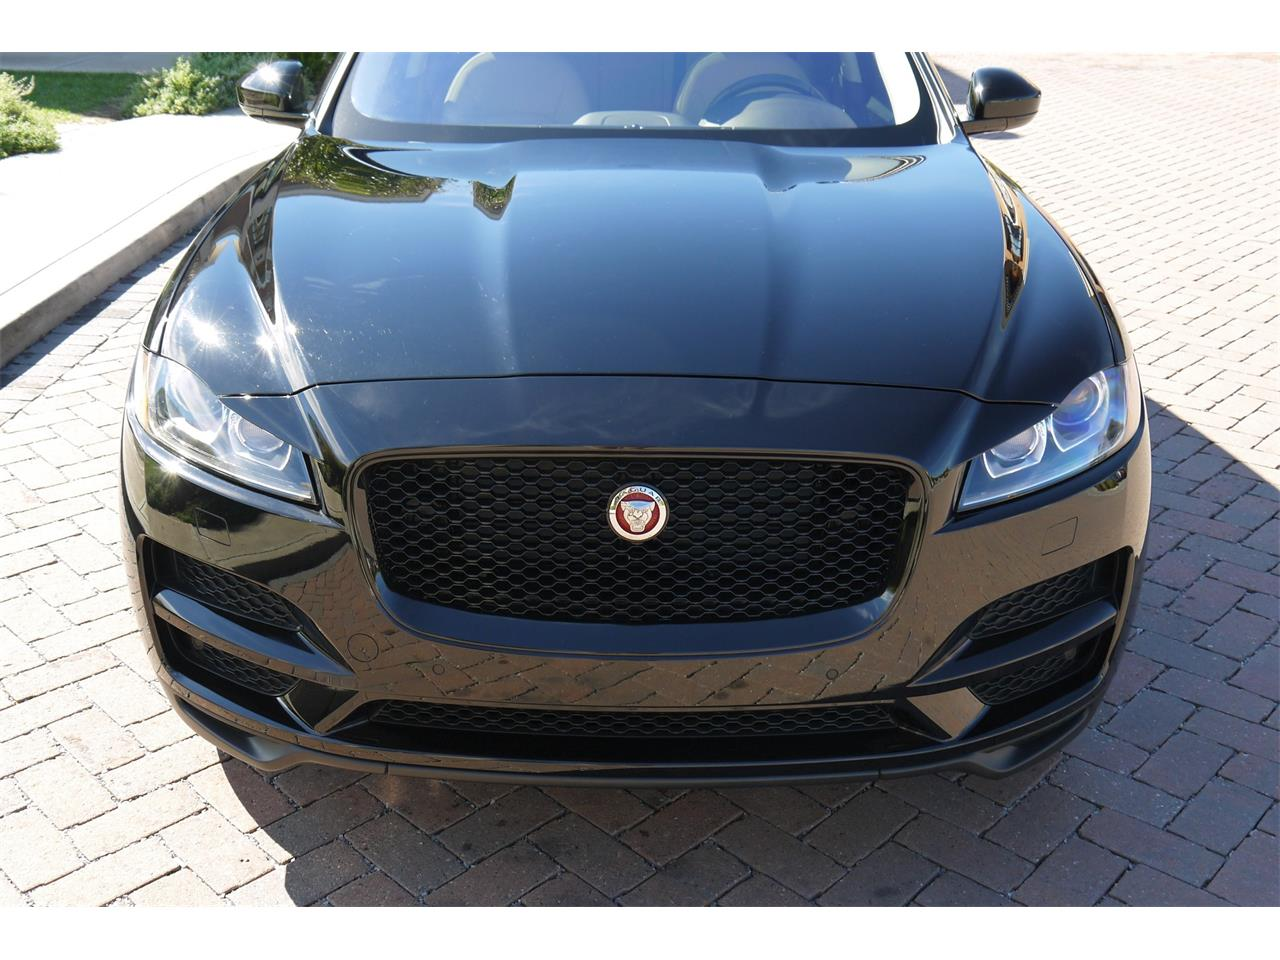 Large Picture of 2017 Jaguar F-PACE located in Tennessee - $49,800.00 - OOIB